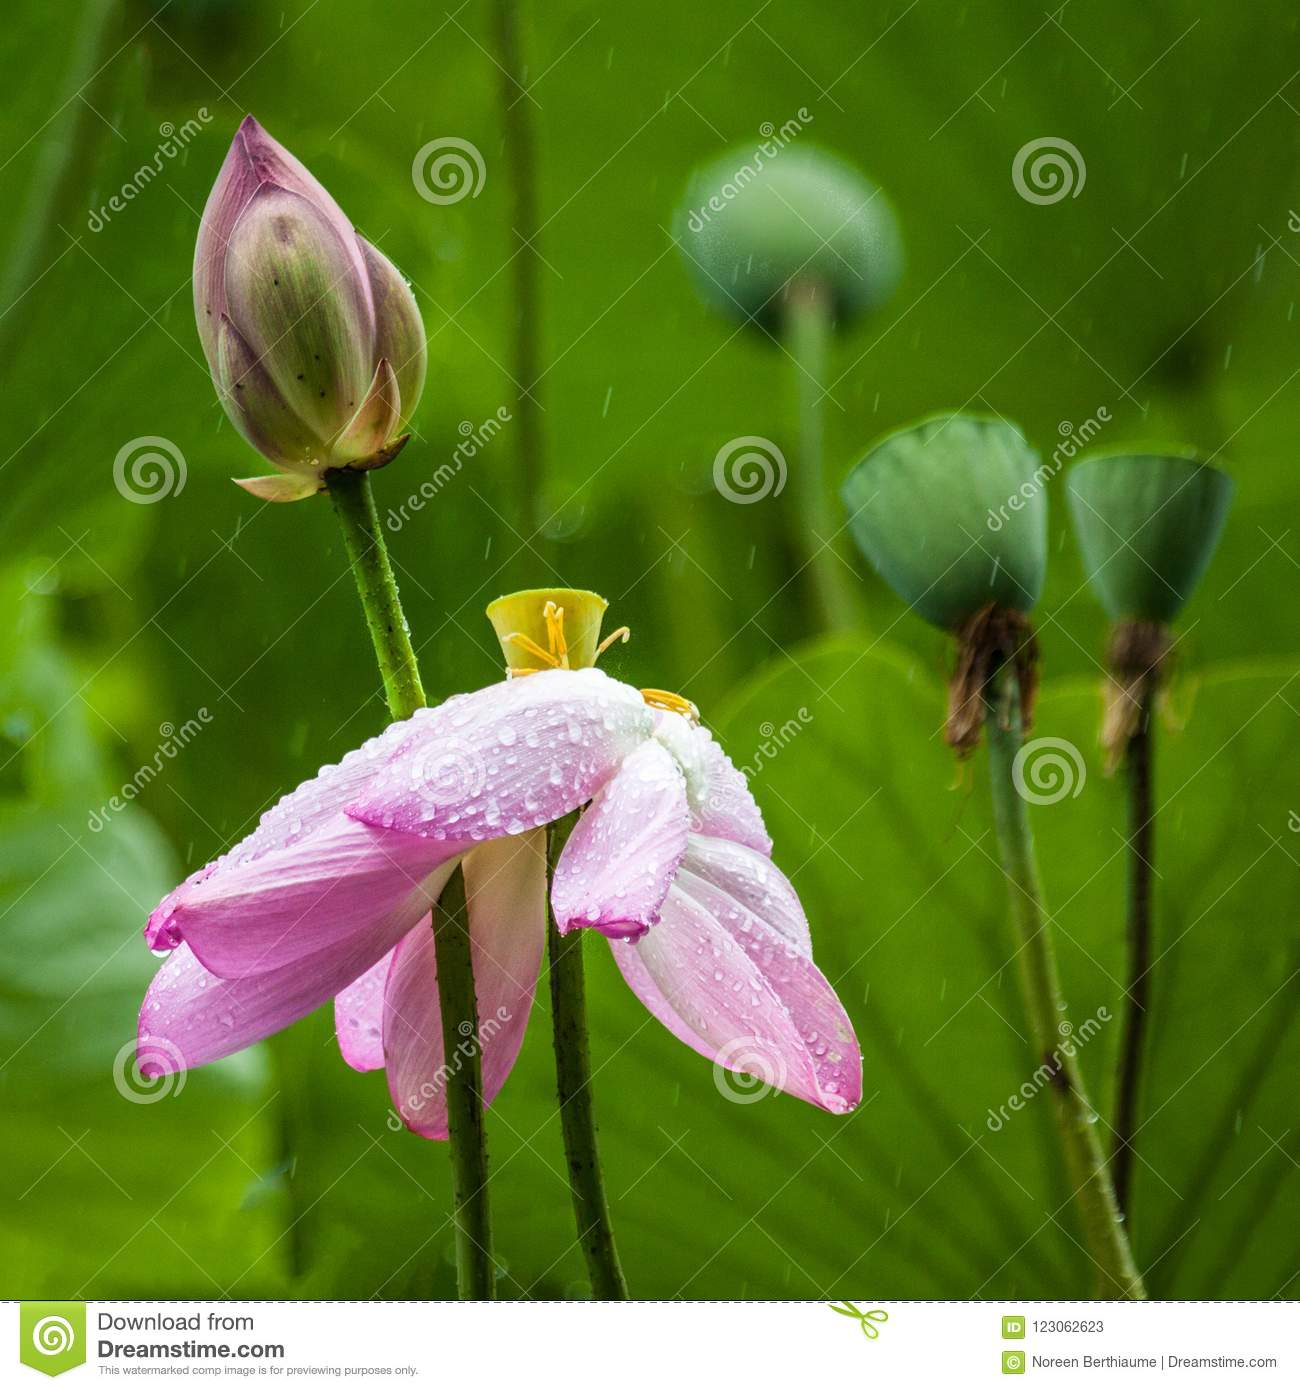 Pink Lotus Flower With Green Leaves And Bud And Seed Pod Stock Image